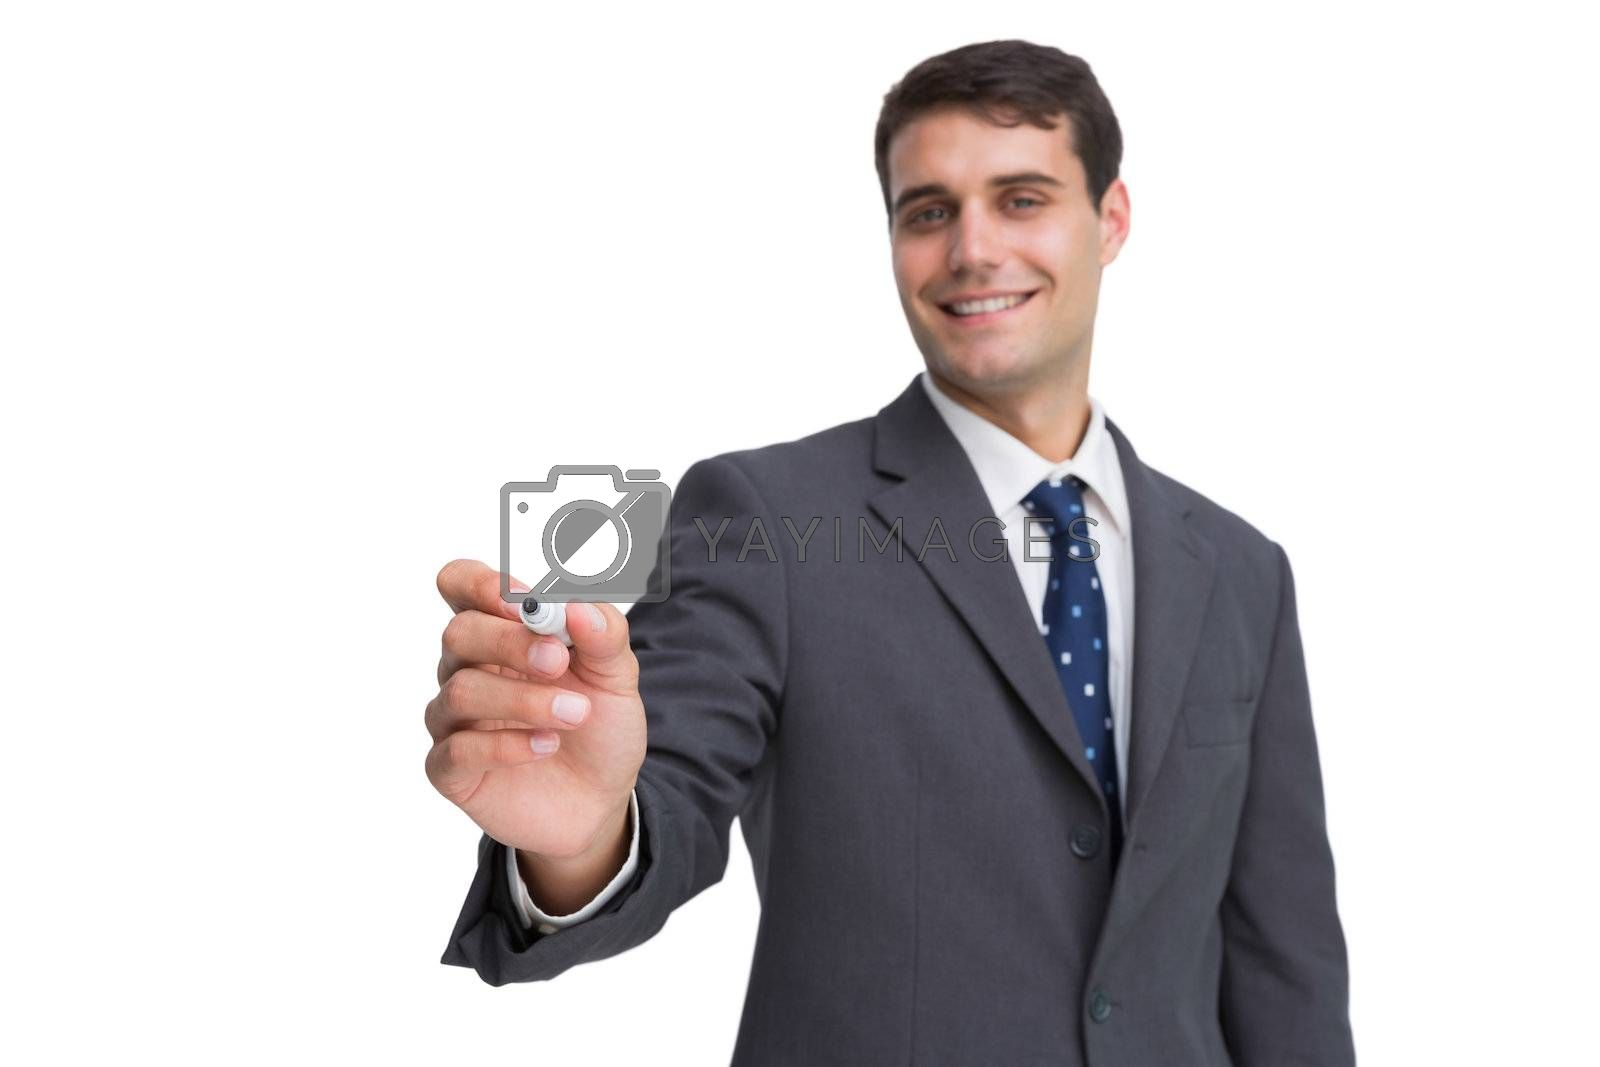 Smiling businessman holding marker and looking at camera by Wavebreakmedia